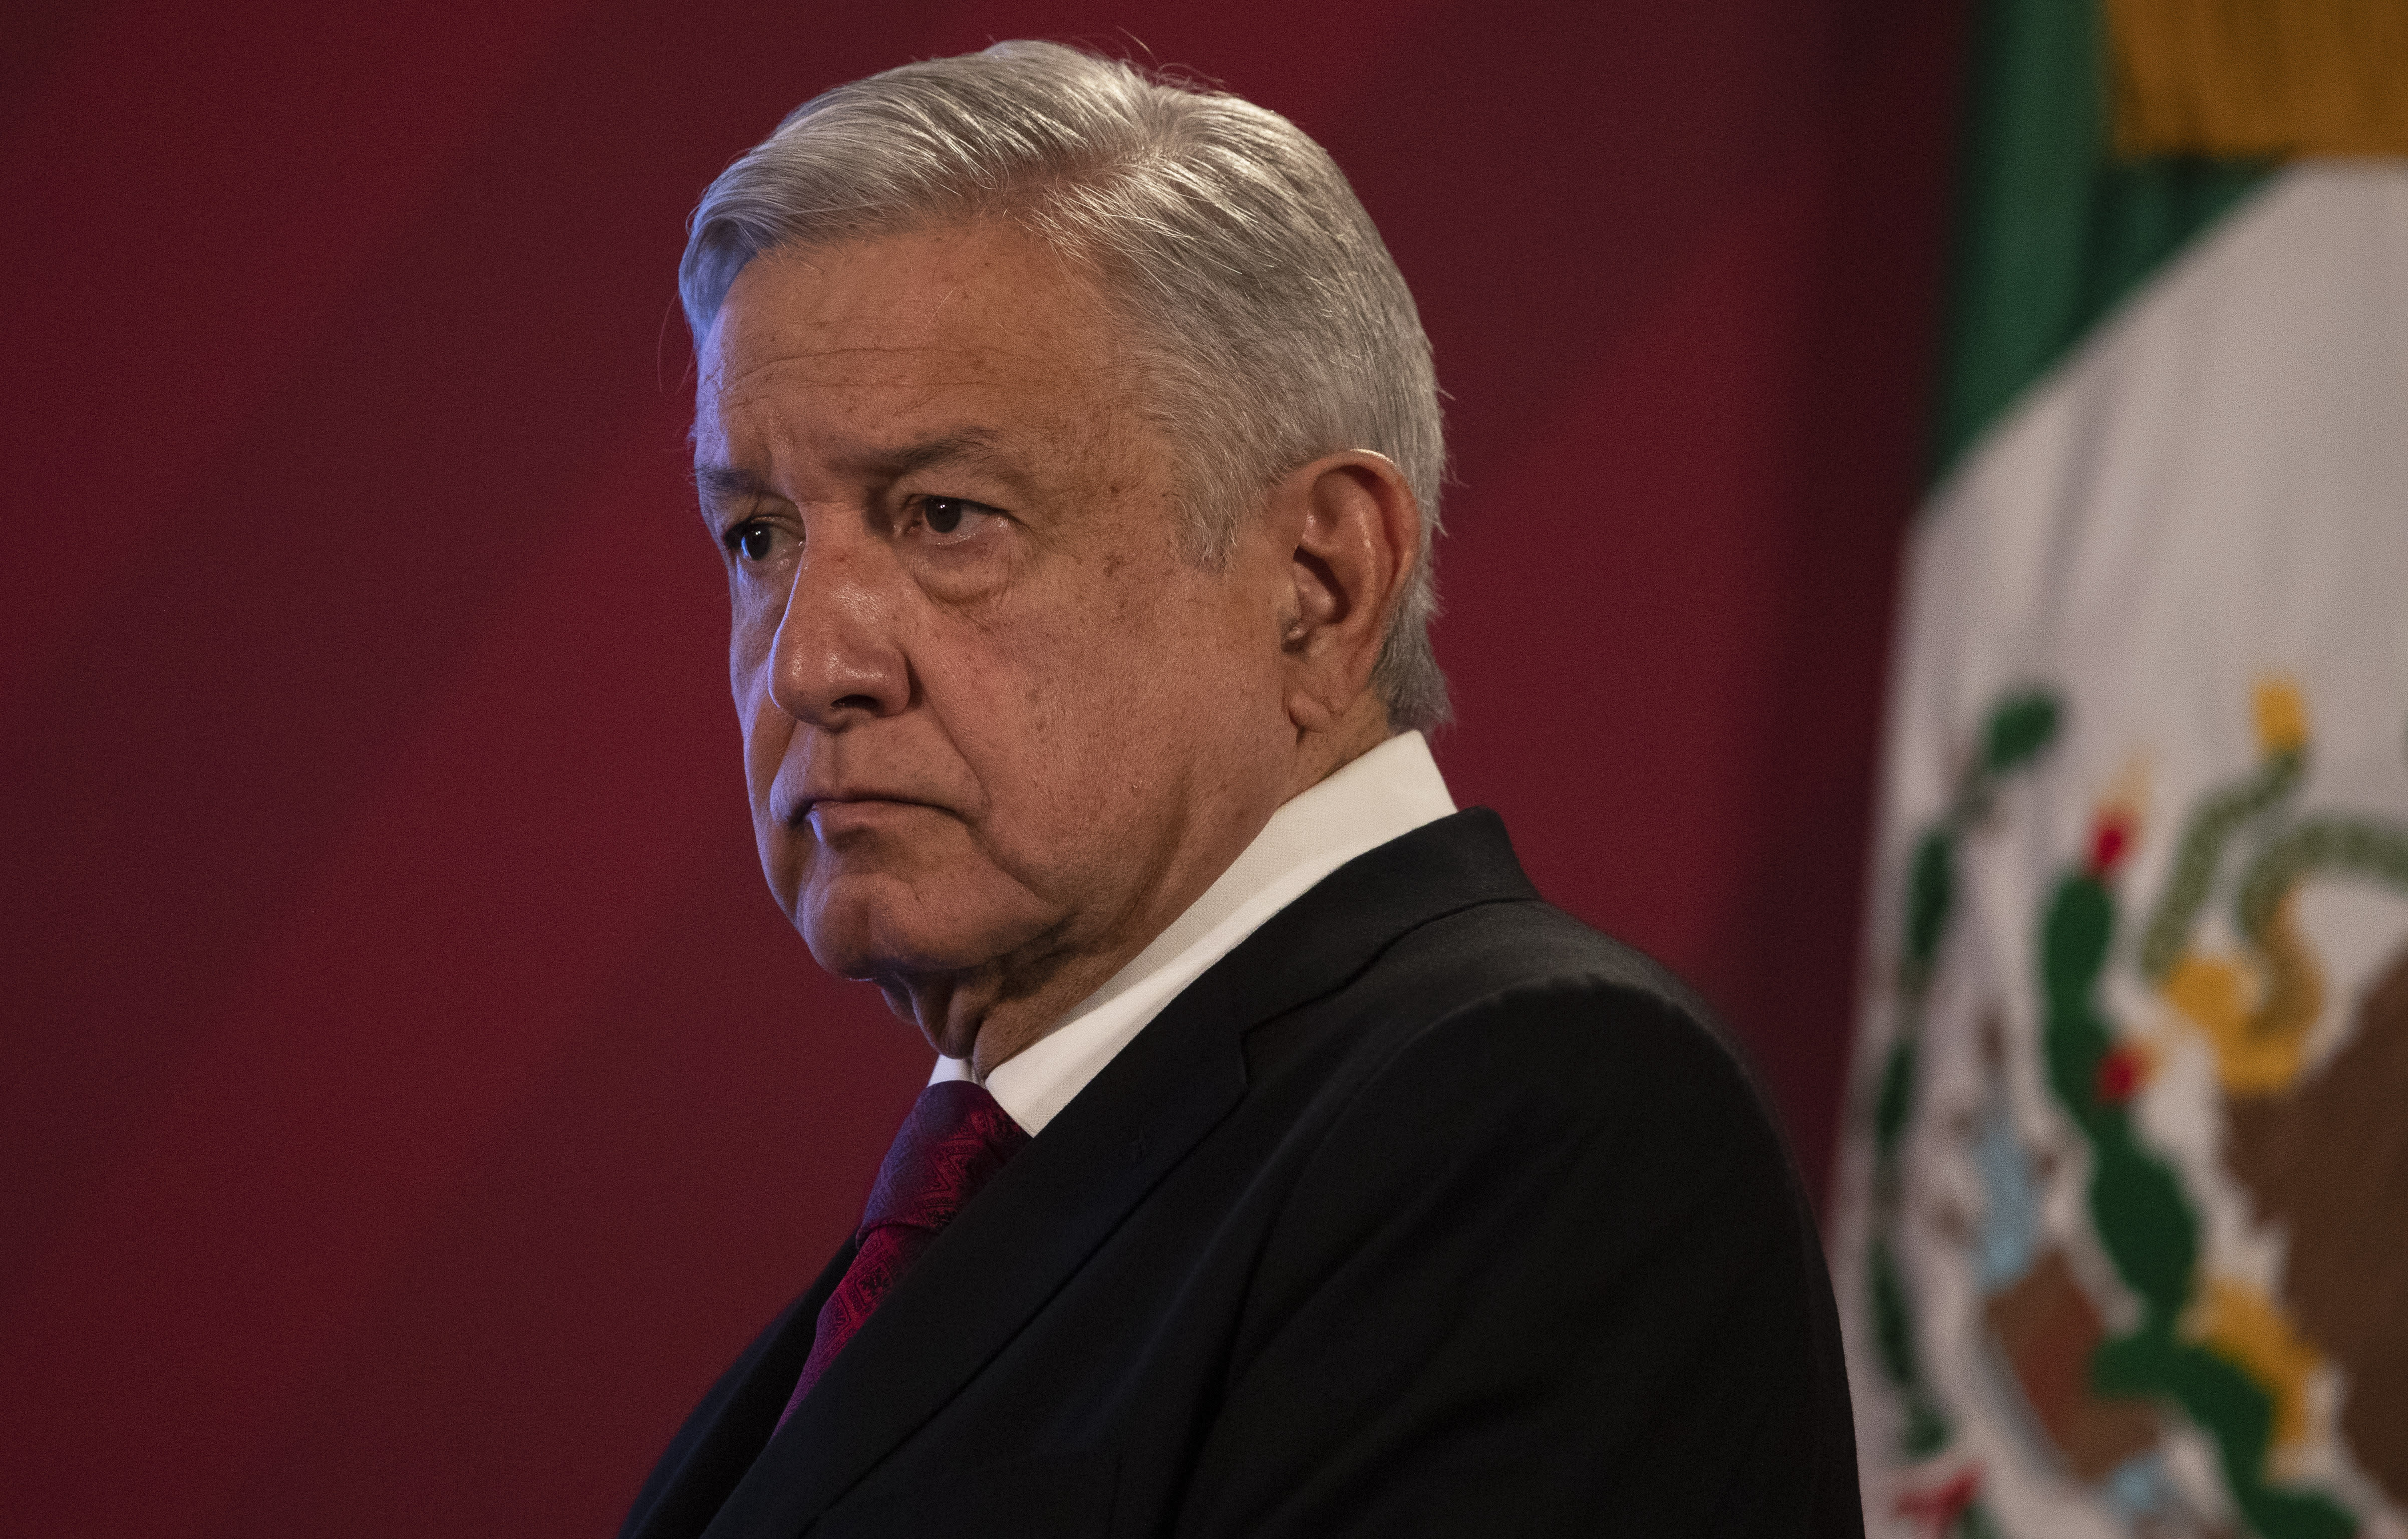 Mexico's President Andres Manuel Lopez Obrador arrives for his daily, morning news conference at the presidential palace, Palacio Nacional, in Mexico City, Monday, July 13, 2020. (AP Photo/Marco Ugarte)